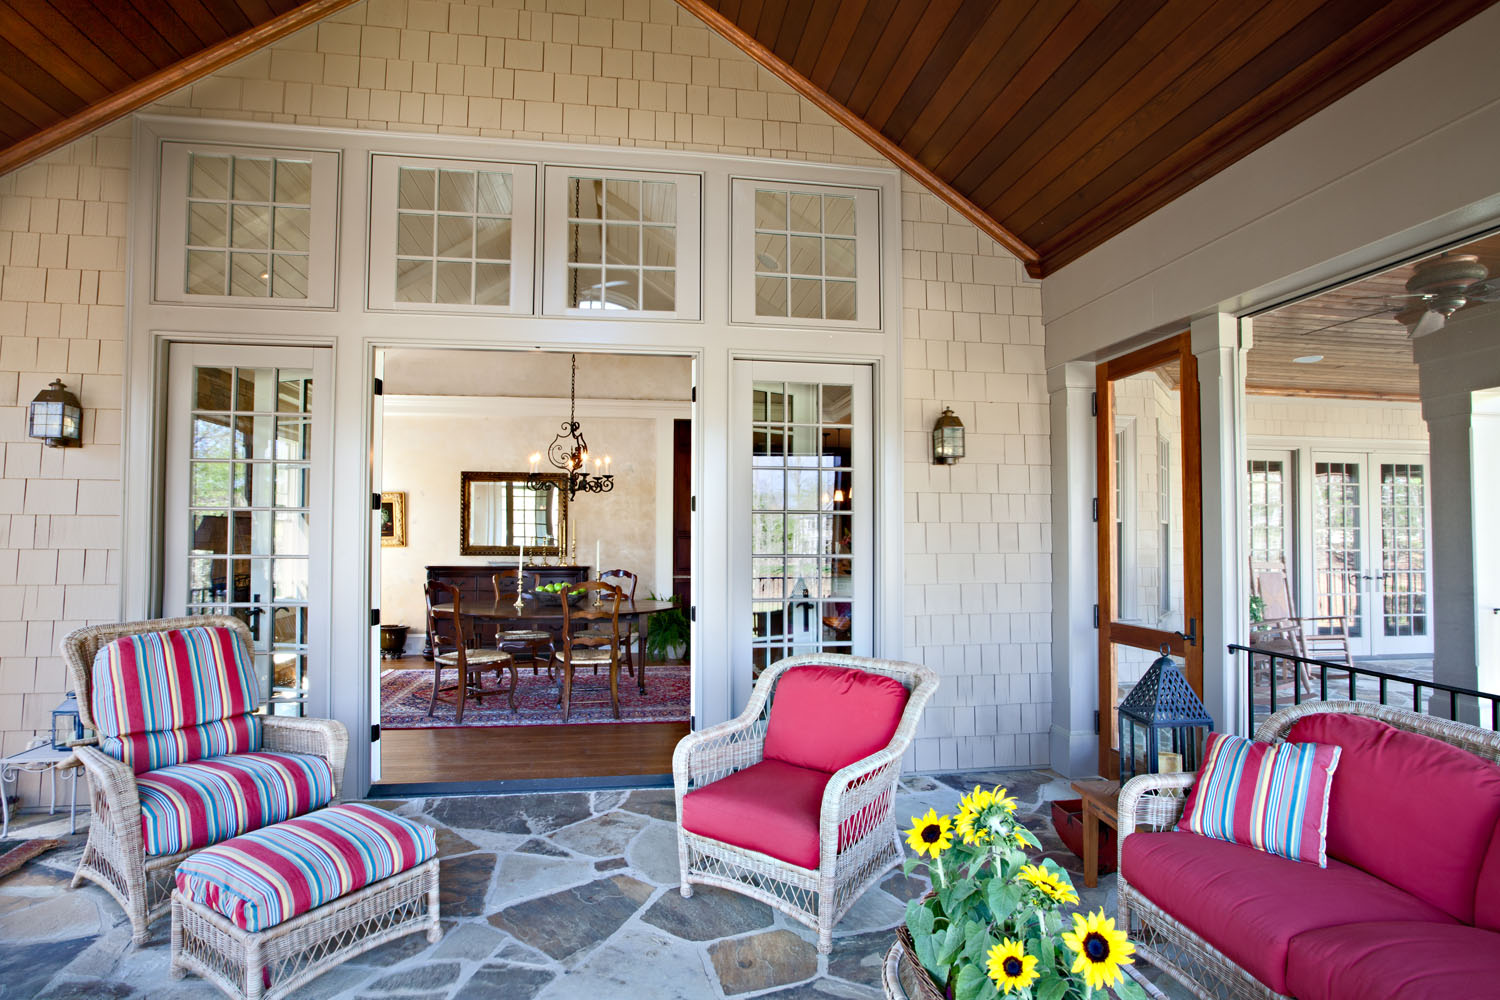 Boston interior designer Elizabeth Swartz Interiors designed the porch to coordinate with the interior of the home.